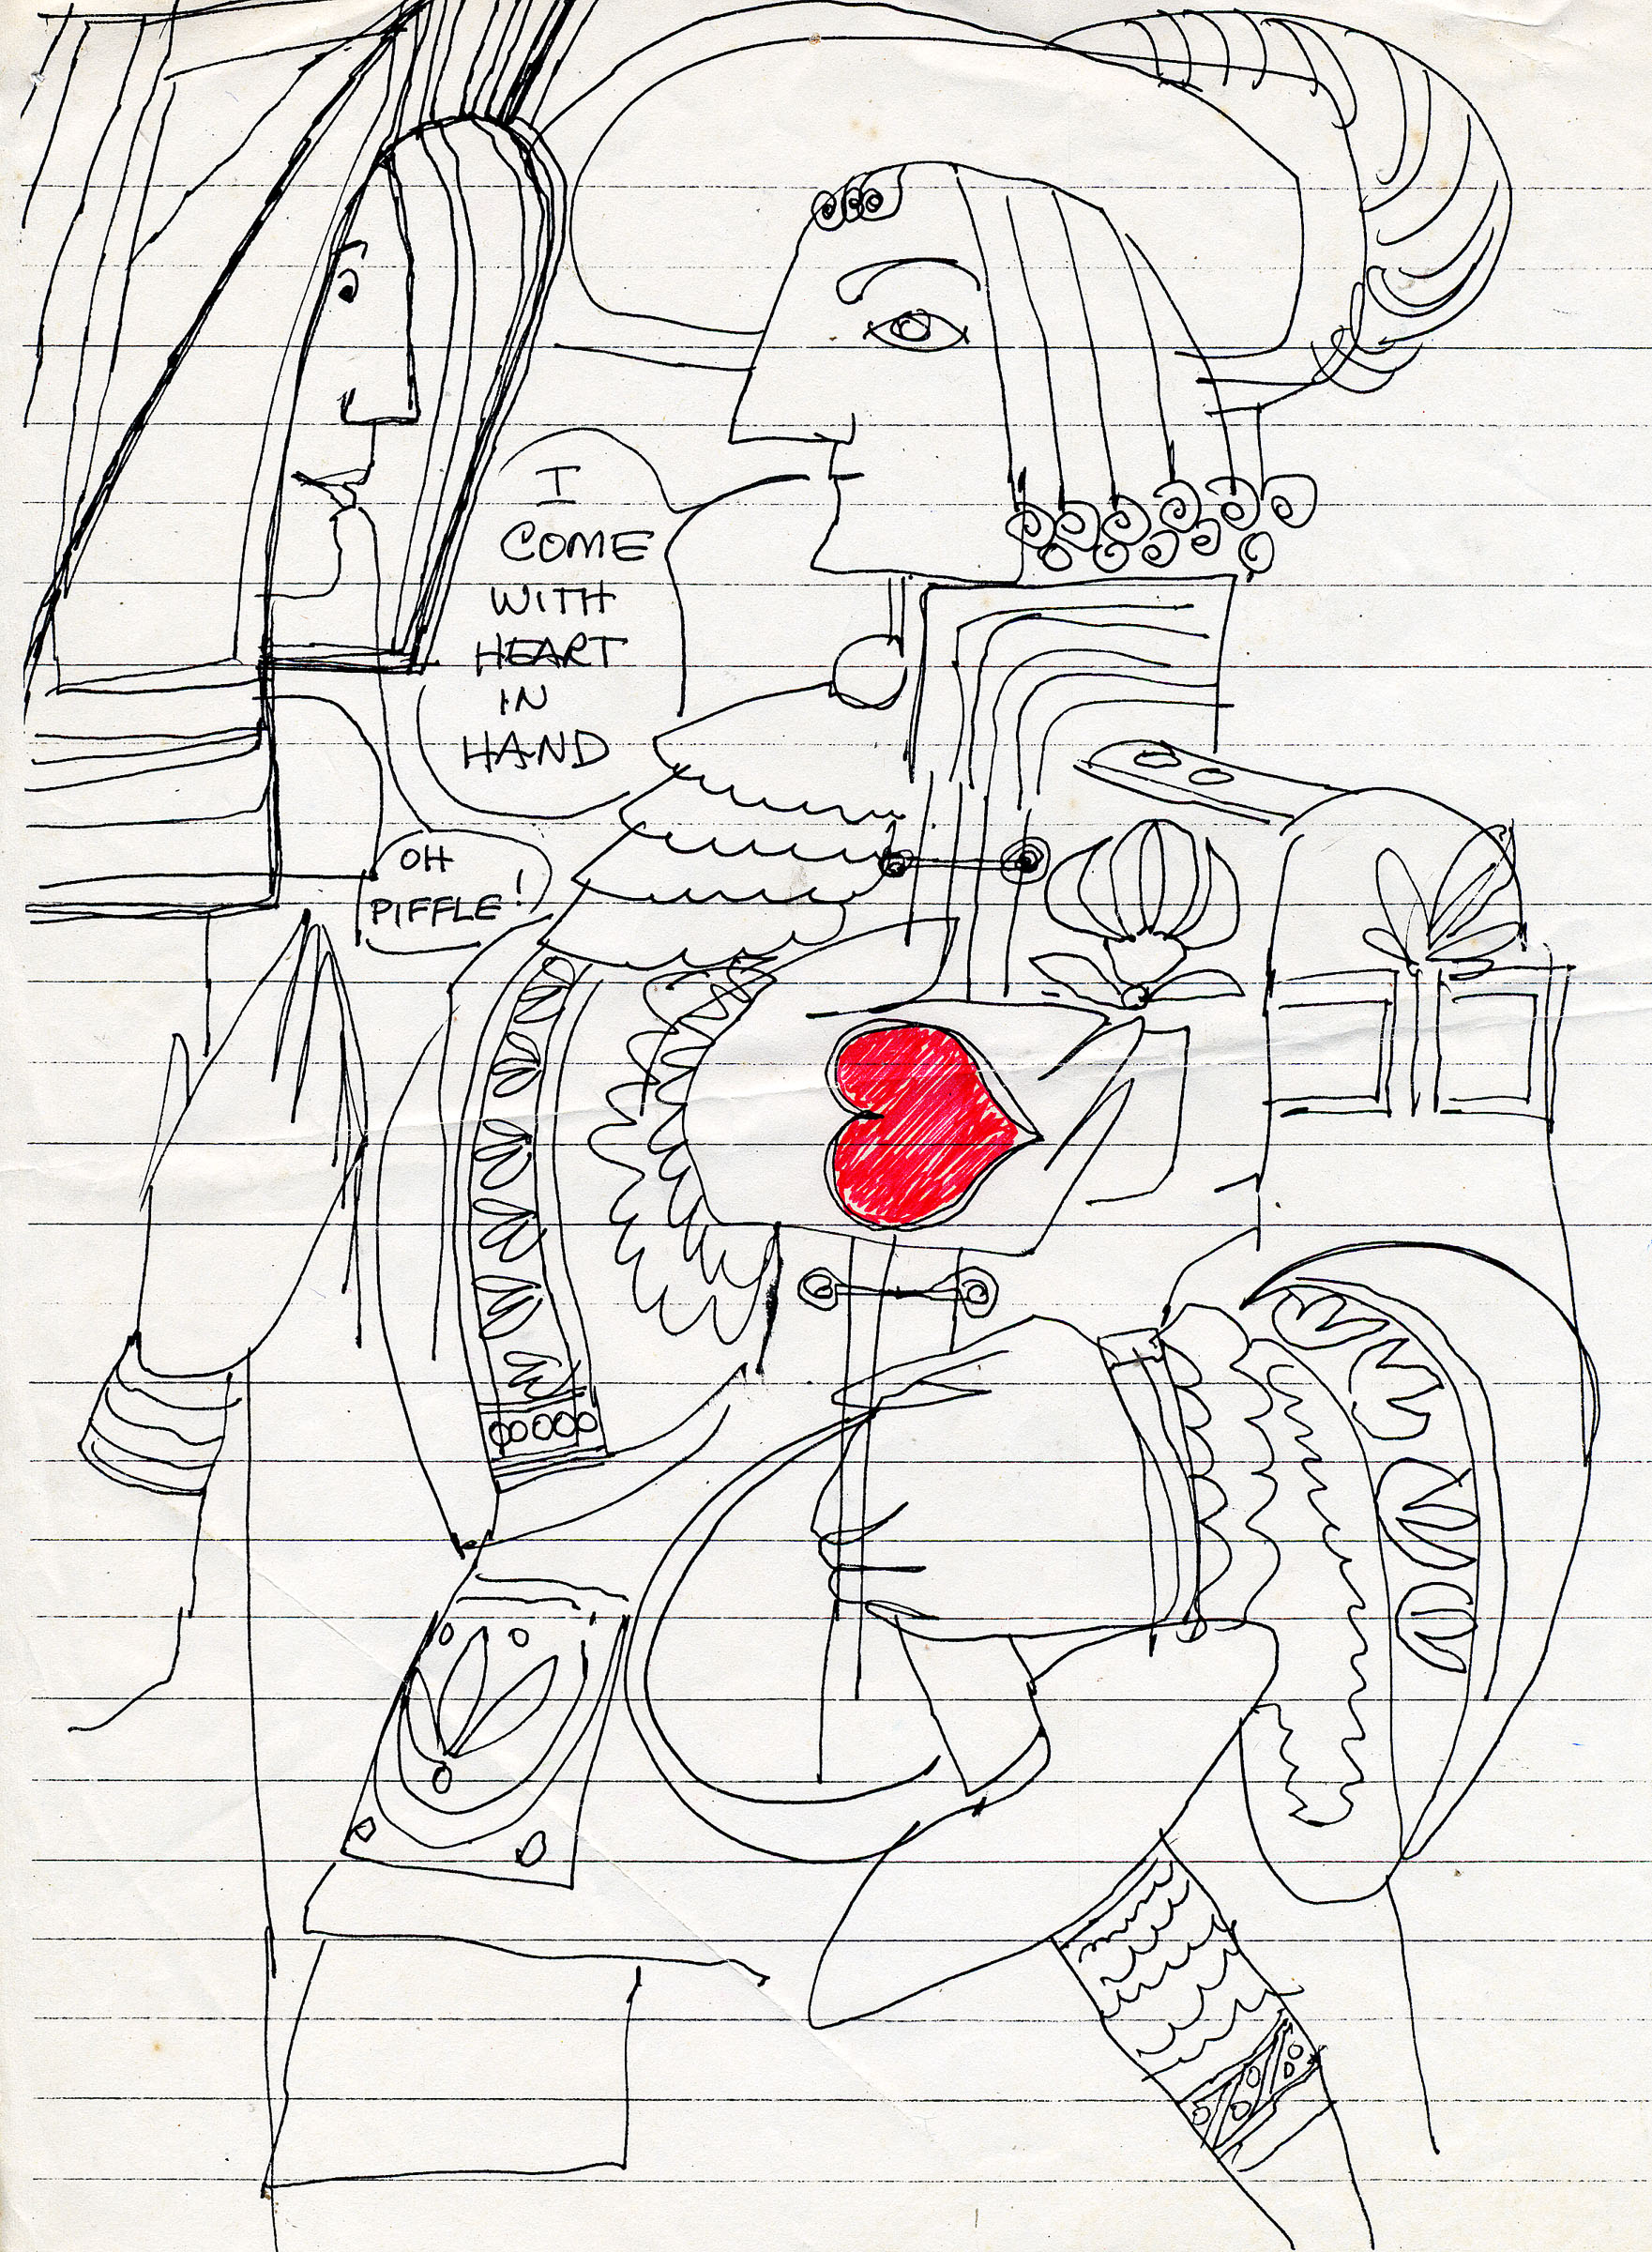 1761x2400 Joan Gillman Smith, Heart In Hand, Another Doodle On A Scrap